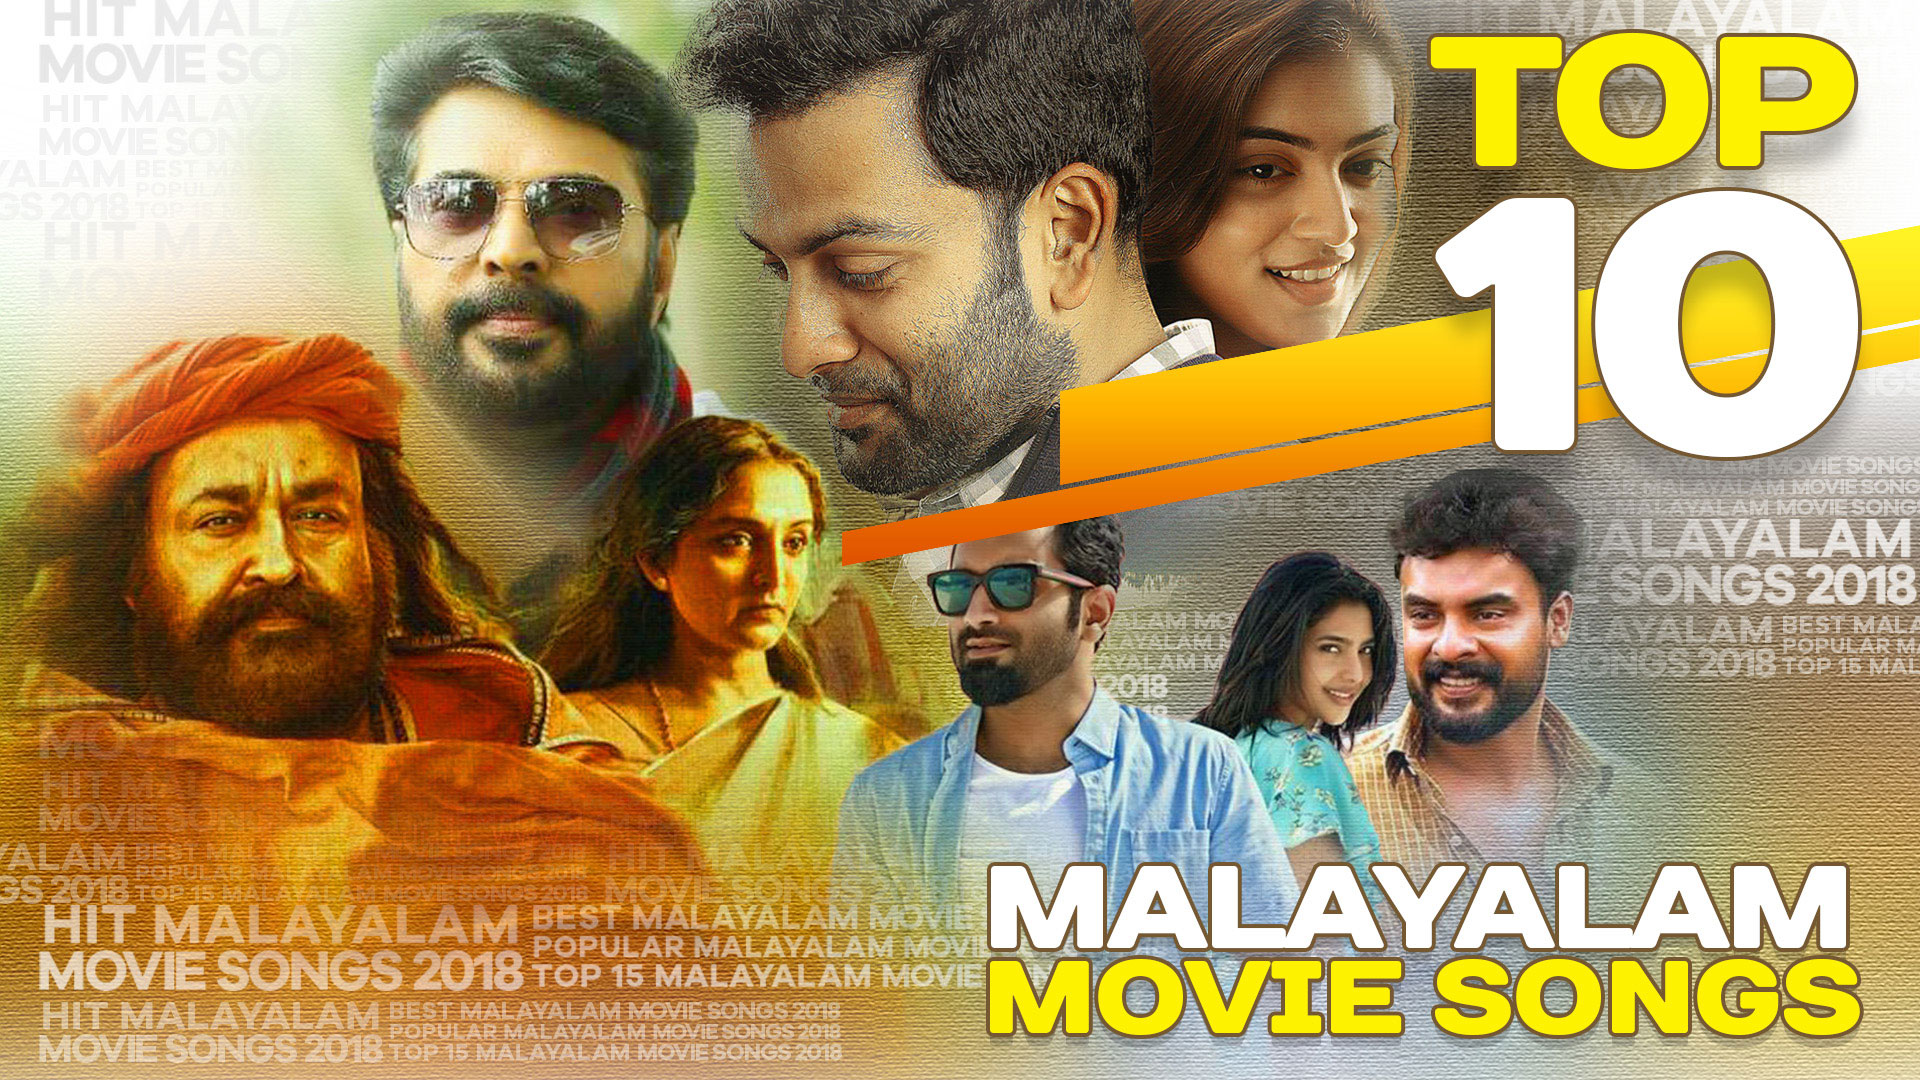 Top 10 Malayalam Movie Songs 2018, Best Malayalam Songs 2018, Top 10 Malayalam Movie Songs 2018, Best Malayalam Movie Songs 2018, Hit Malayalam Movie Songs 2018, Most Popular Malayalam Movie Songs 2018, Best of Malayalam Movie Songs 2018, Best Malayalam Songs 2018, Top 15 Malayalam Movie Songs 2018, Top Malayalam Songs 2018, Top 15 Malayalam Songs 2018, Top 10 Malayalam Film Songs 2018, Top 15 Malayalam Film Songs 2018, Malayalam Romantic Songs 2018, Malayalam Movie Songs 2018, Malayalam Film Songs 2018 Malayalam Hit Songs List 2018